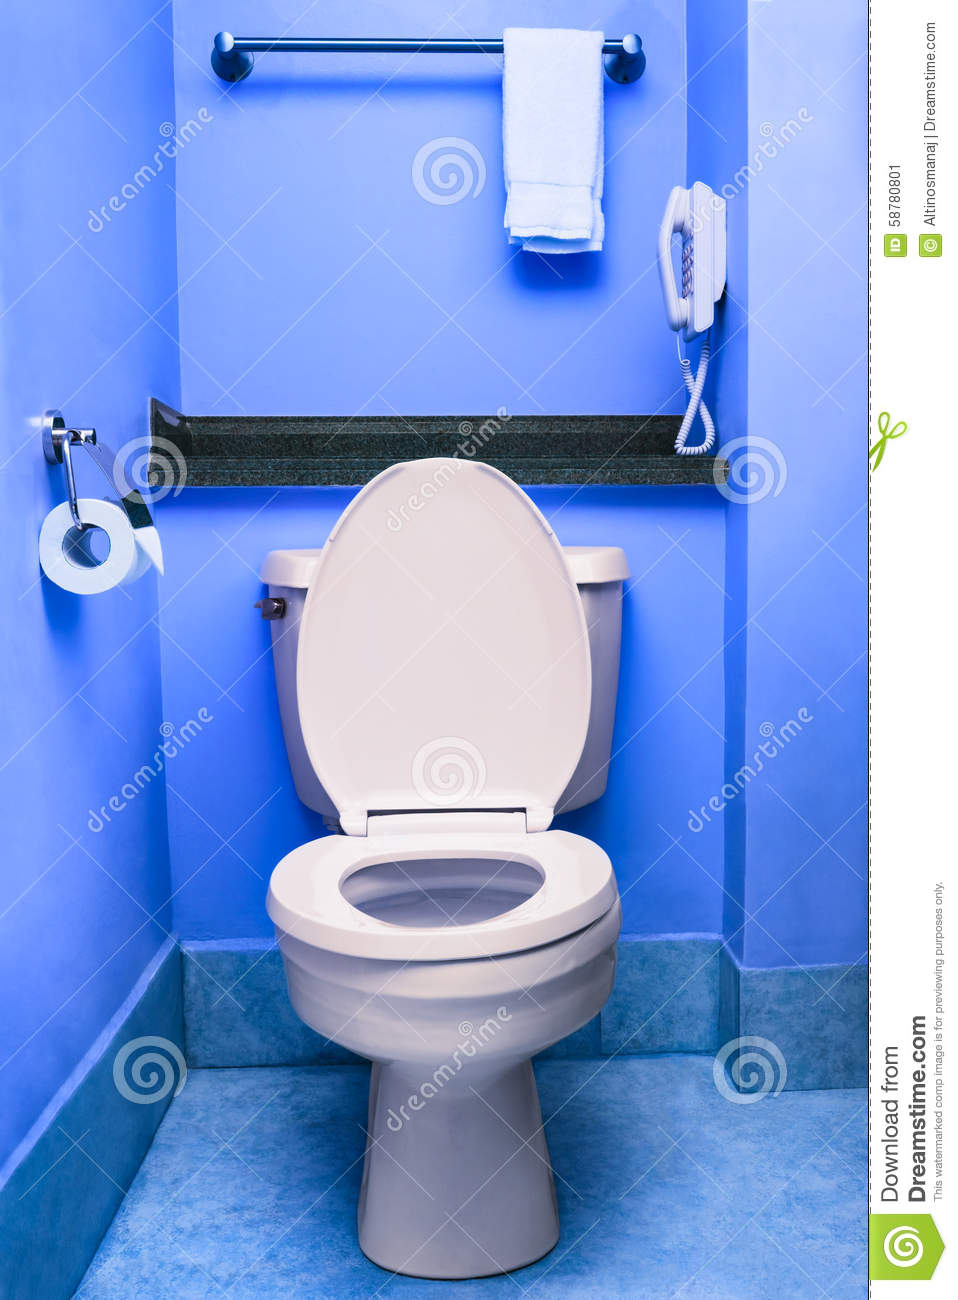 Clean Toilet Seat Bowl Restroom Blue Wc Interior Washroom